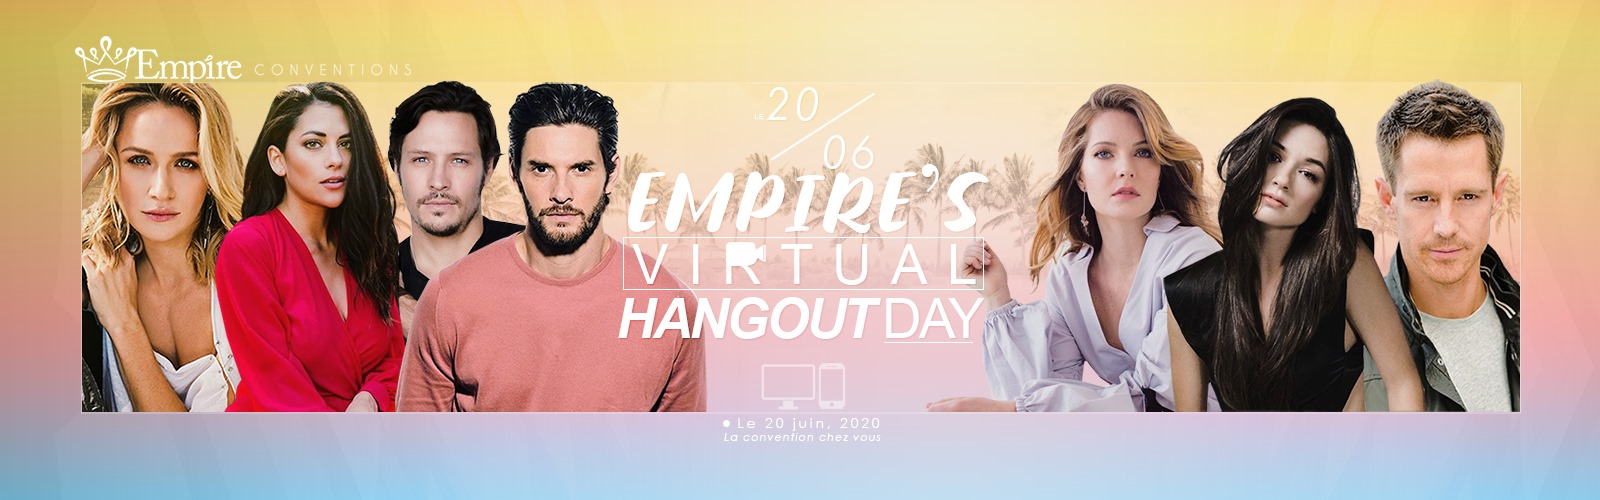 Empire's Virtual Hangout Day